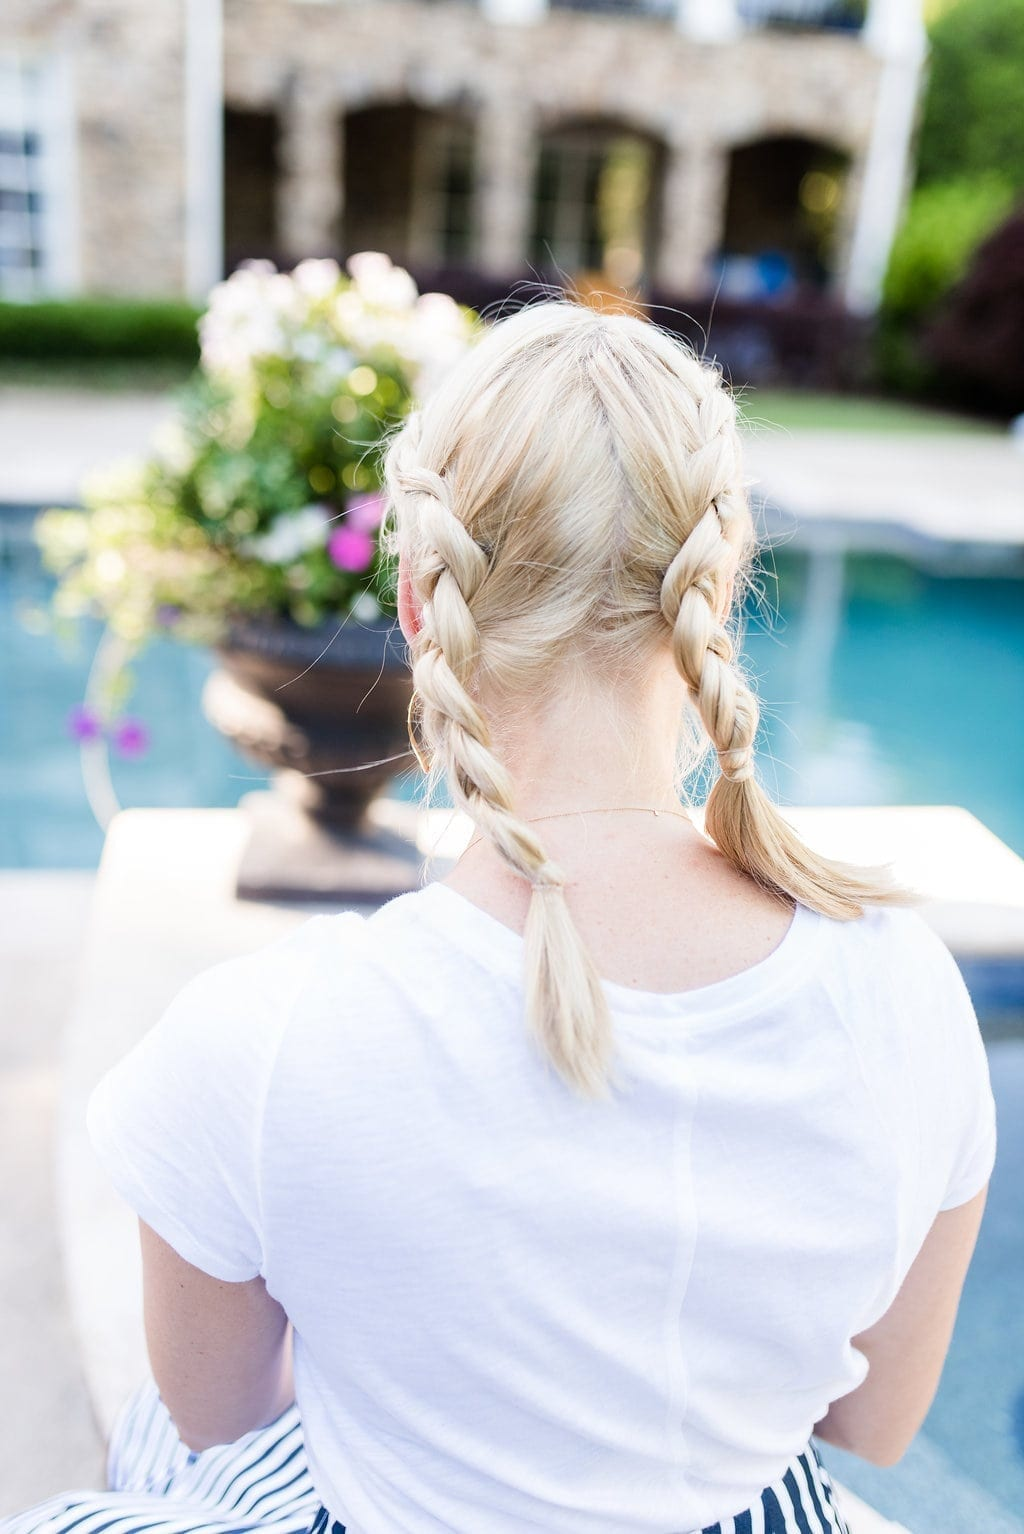 Side braids. How to braid hair for girls.